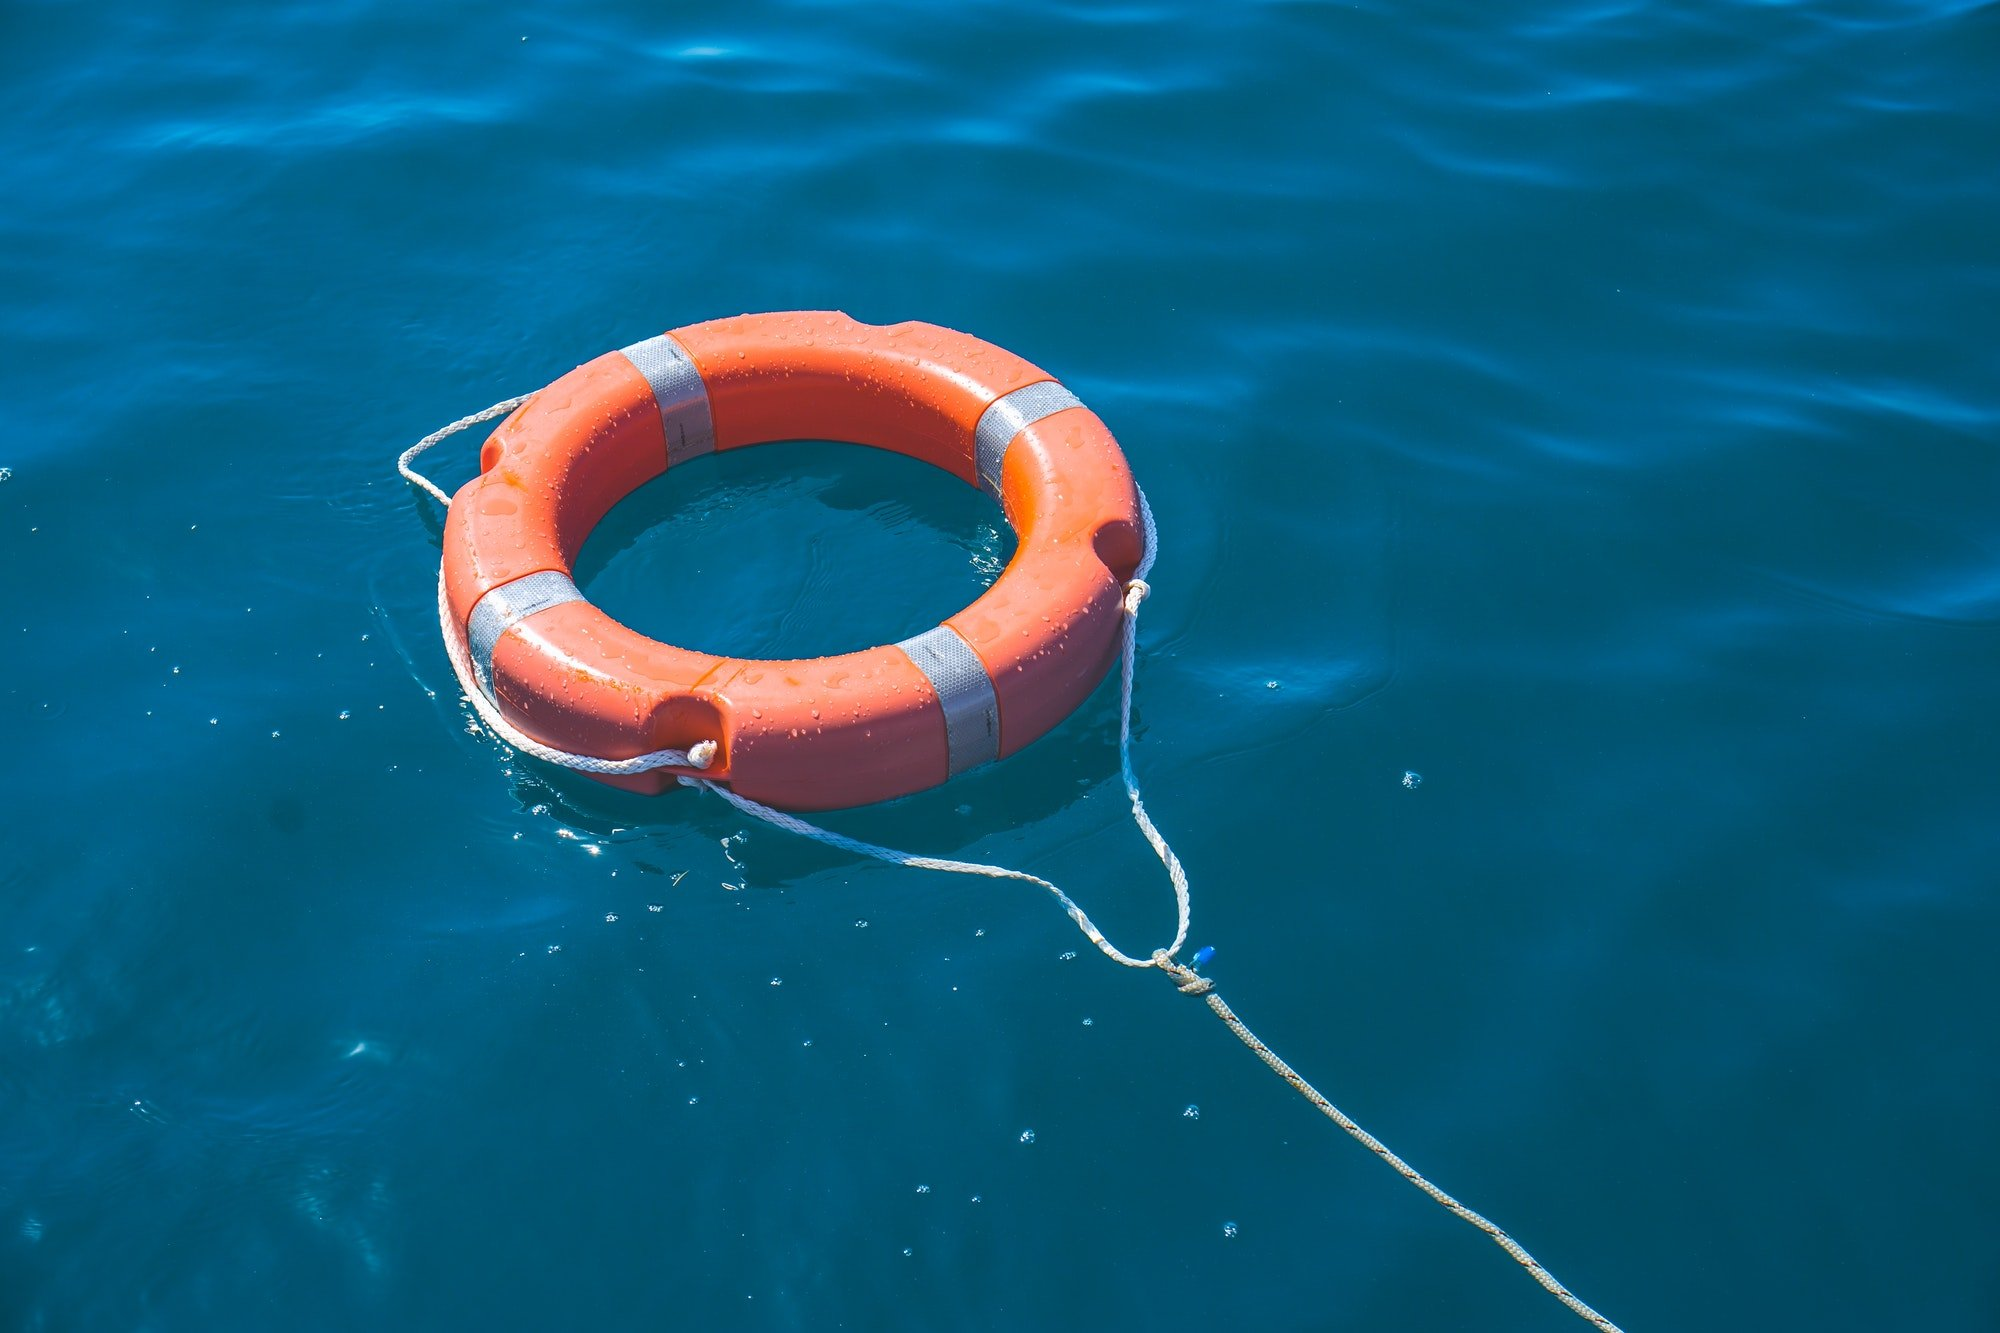 *Nominated* Orange rescue buoy floating on colorful water